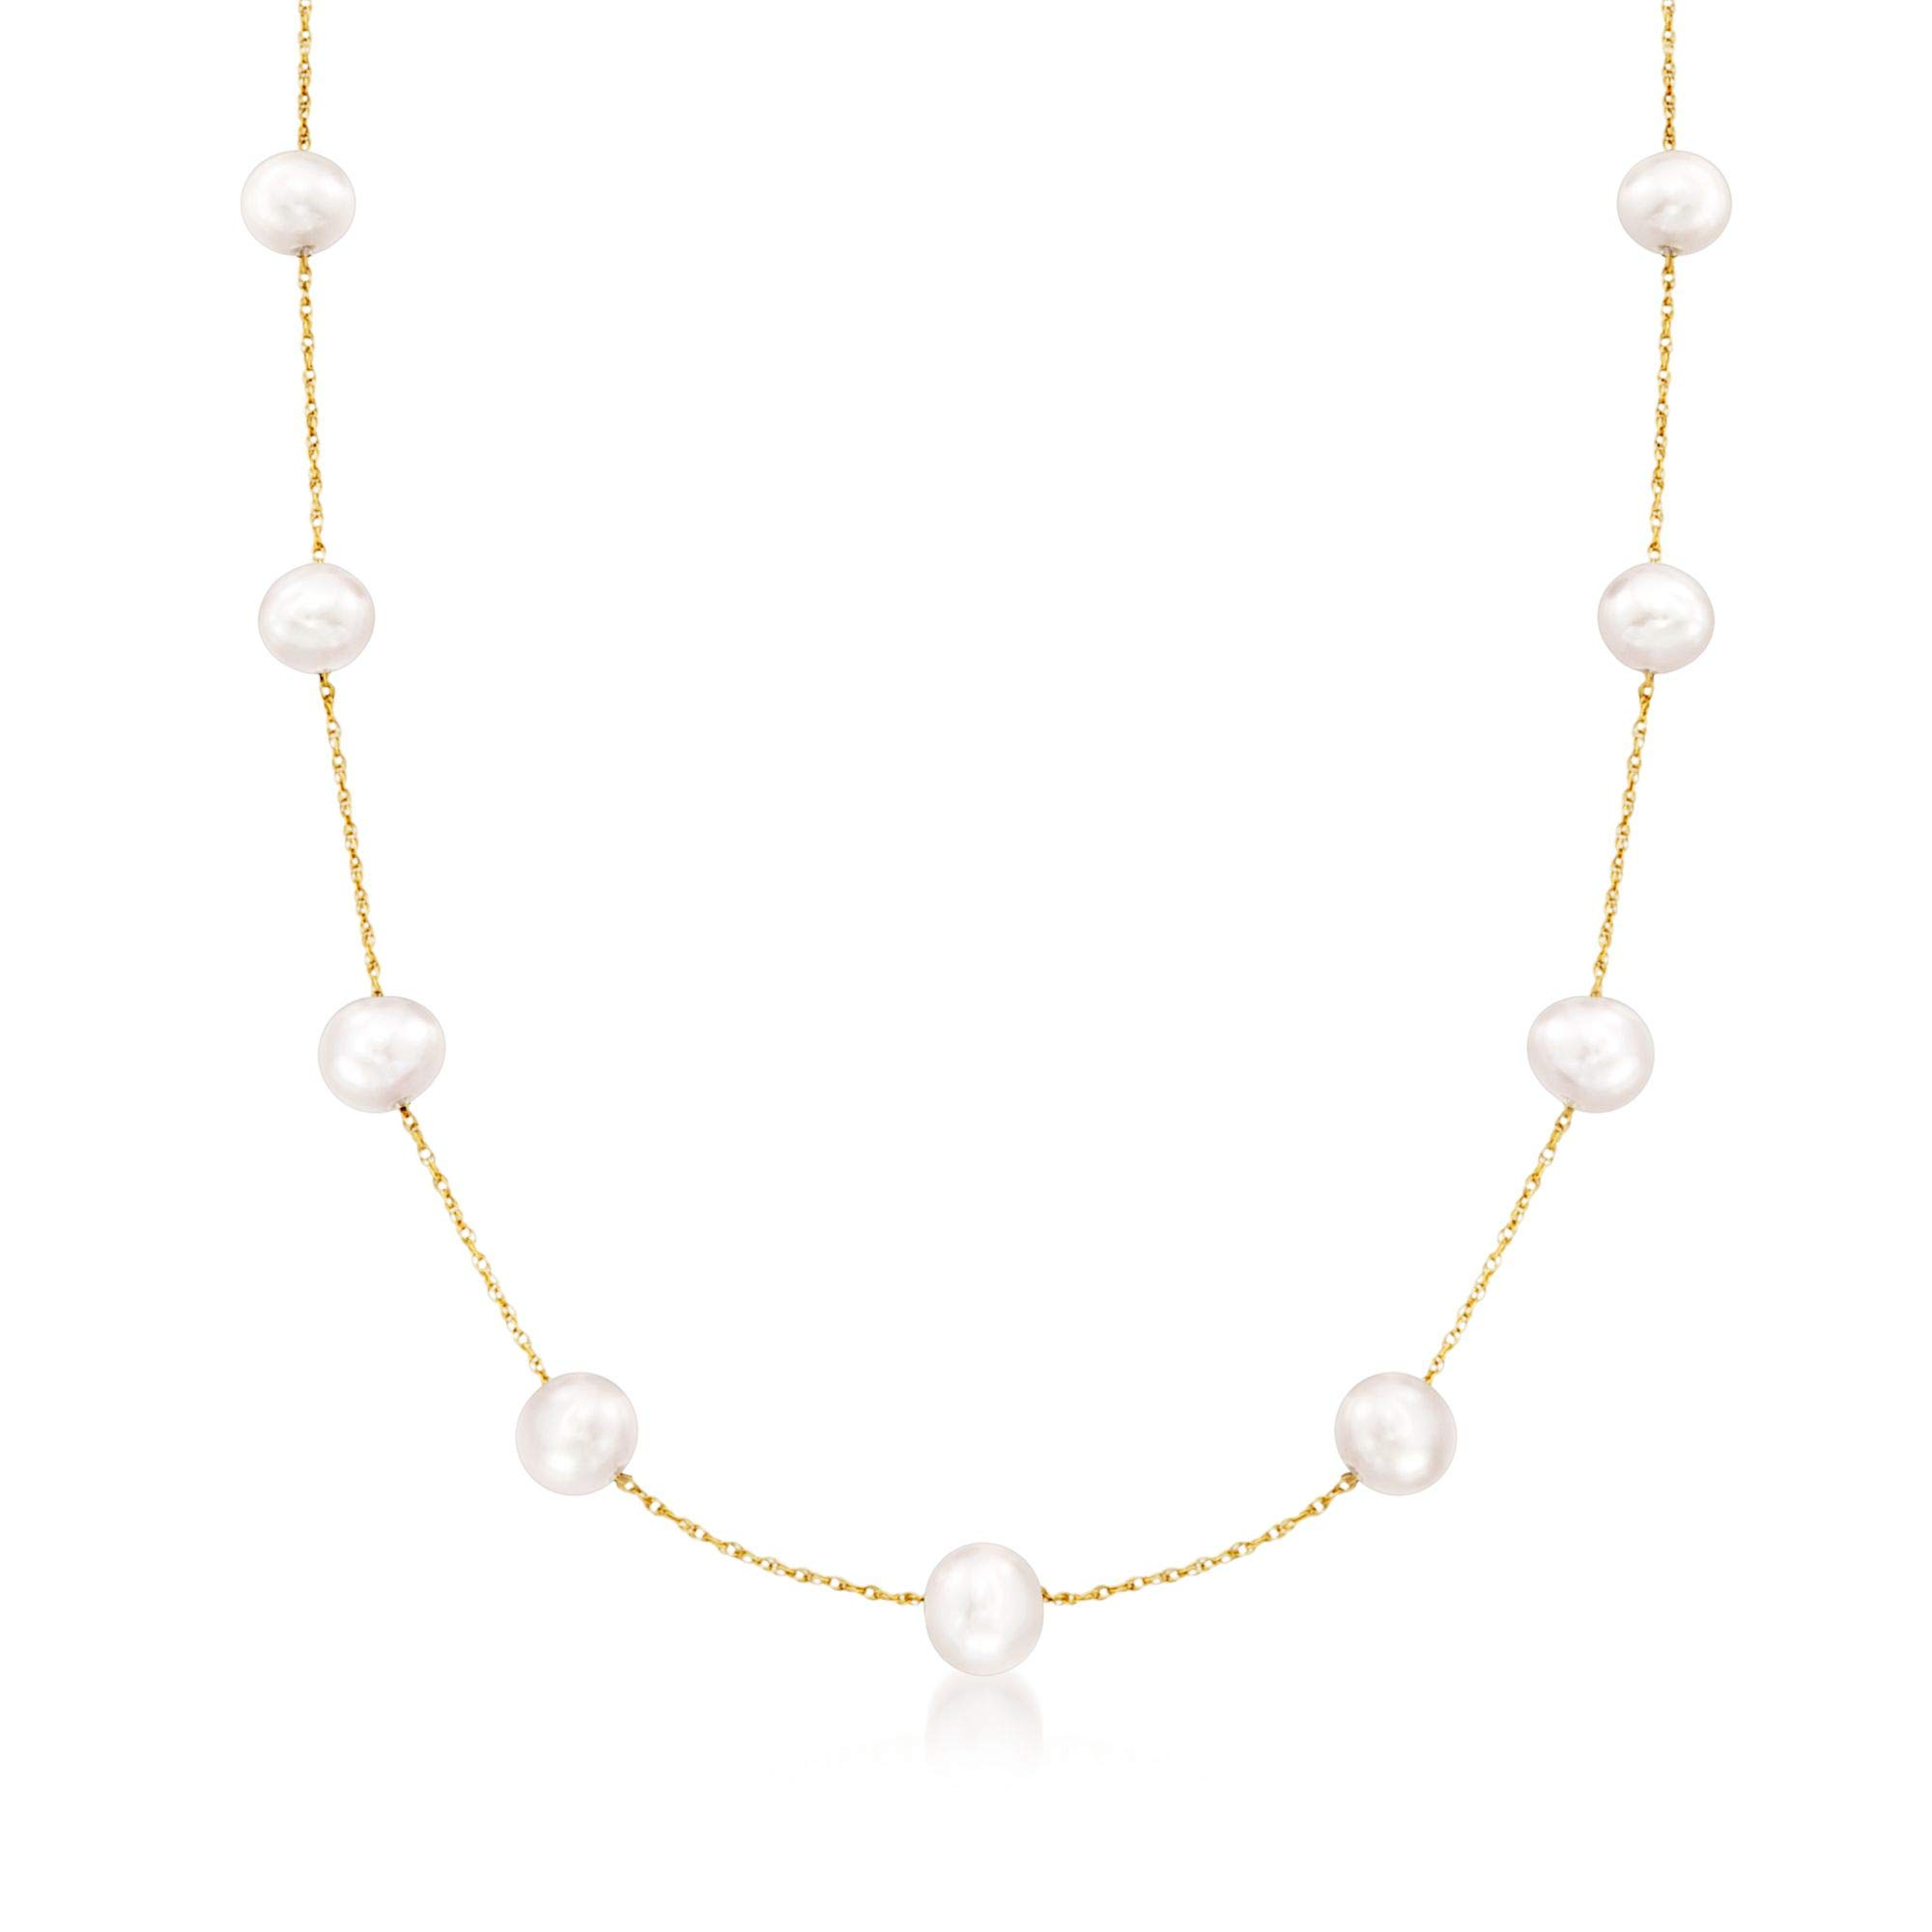 Ross-Simons 6-6.5mm Cultured Pearl Station Necklace in 14kt Yellow Gold